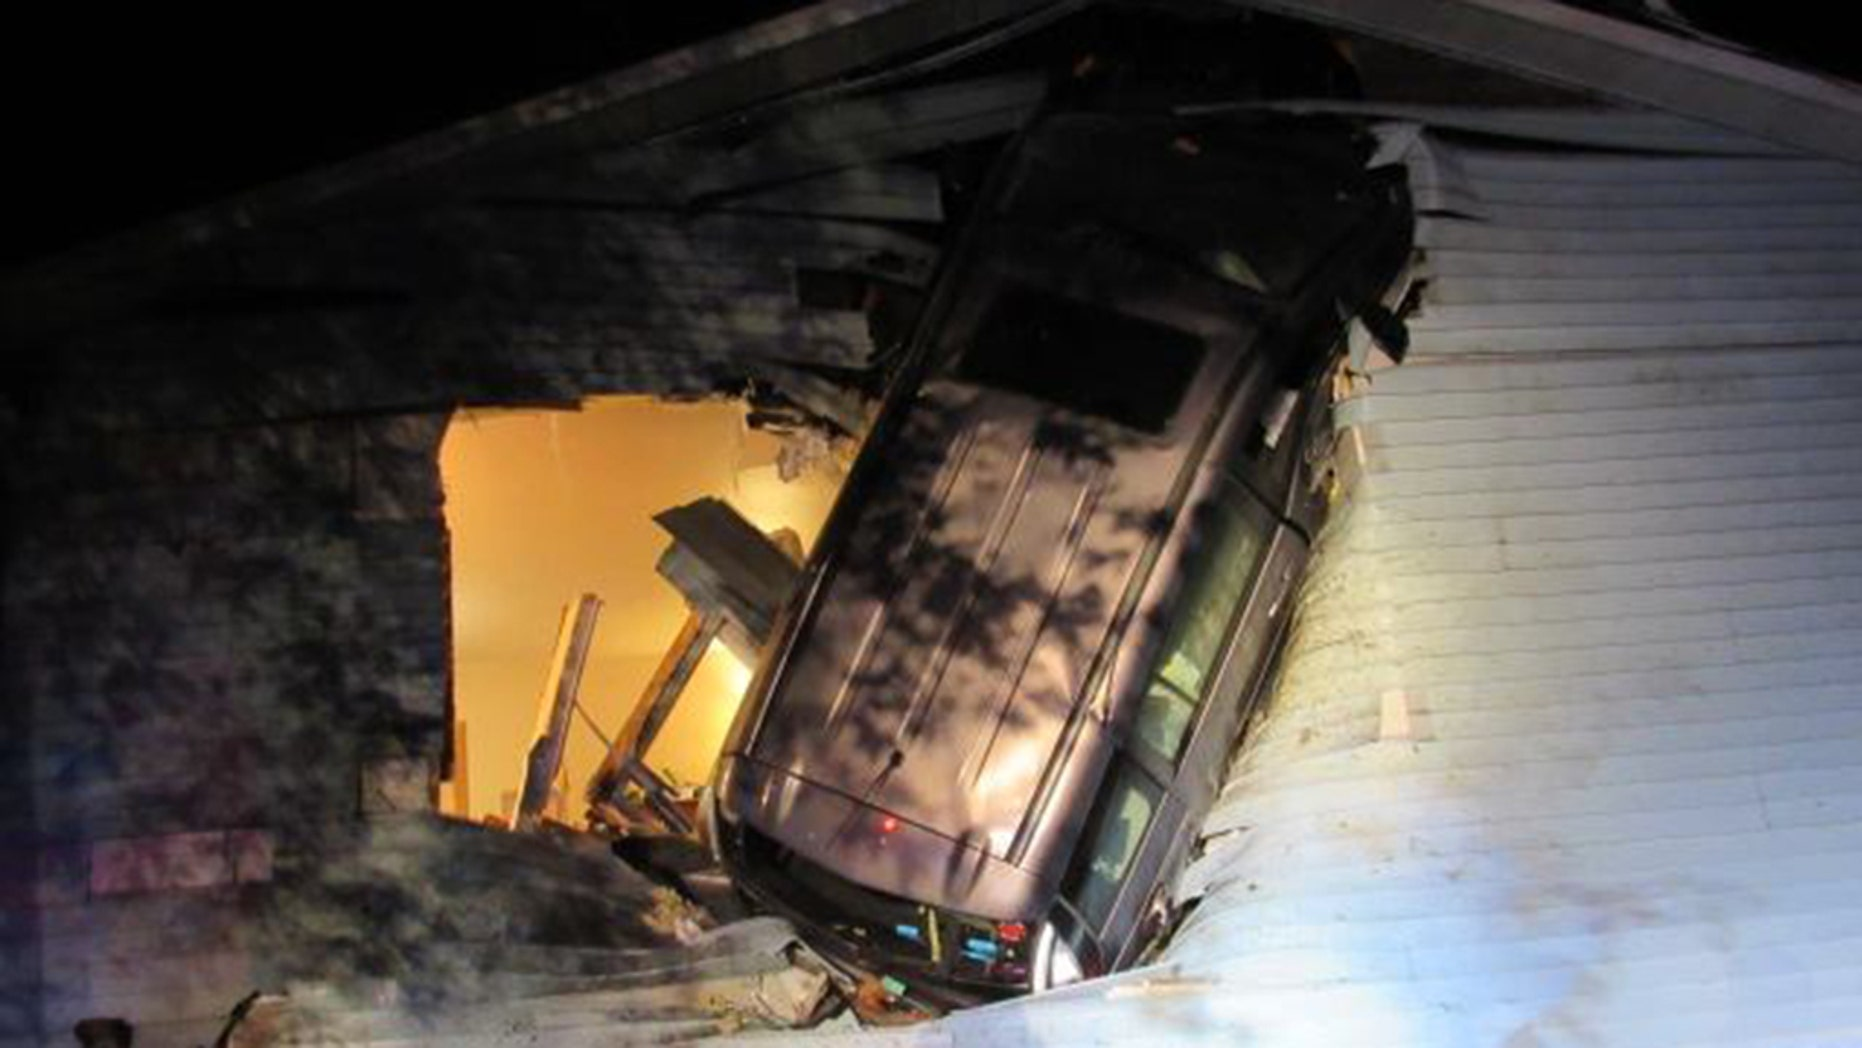 Firefighters in Wisconsin found a minivan embedded in the side of home after responding to a report of an accident.